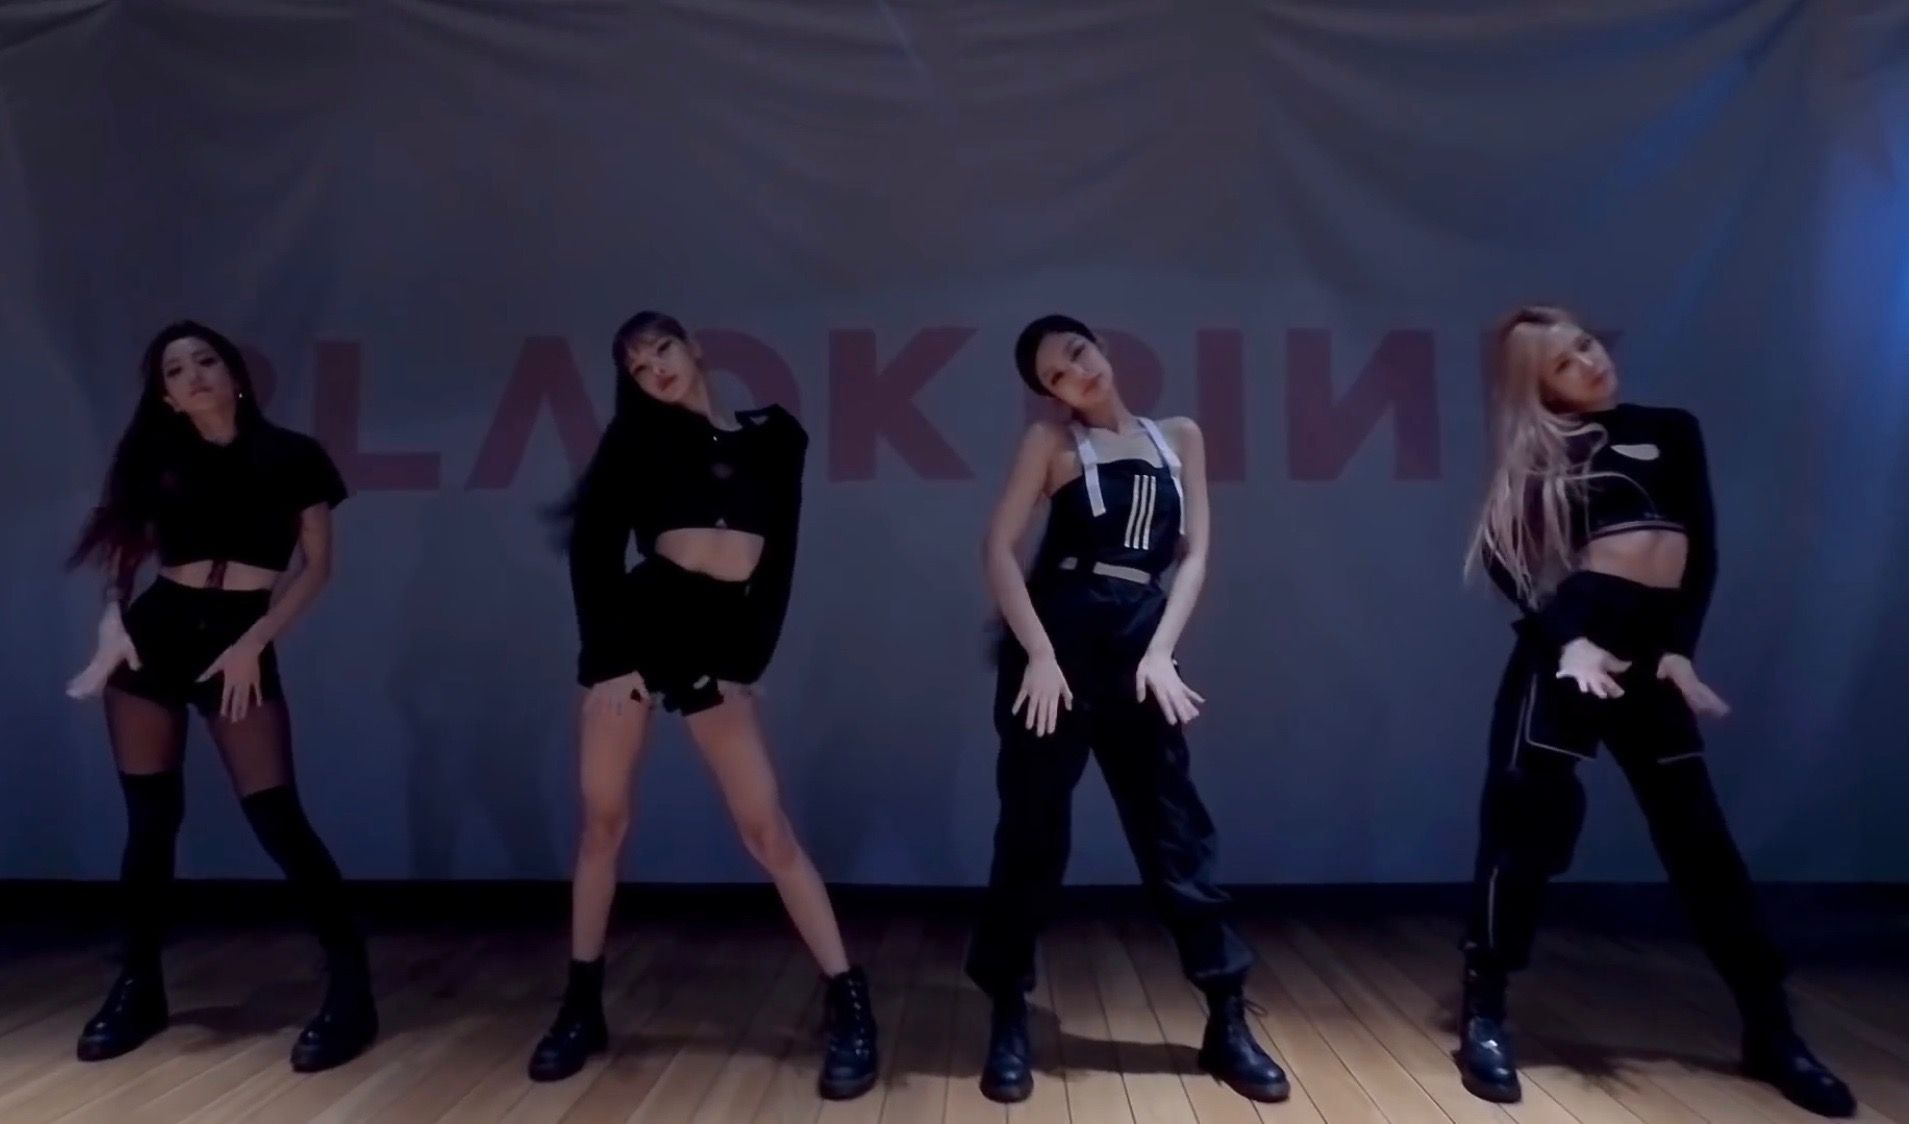 Kill This Love Dance Practice Practice Outfits Dance Outfits Practice Dance Outfits